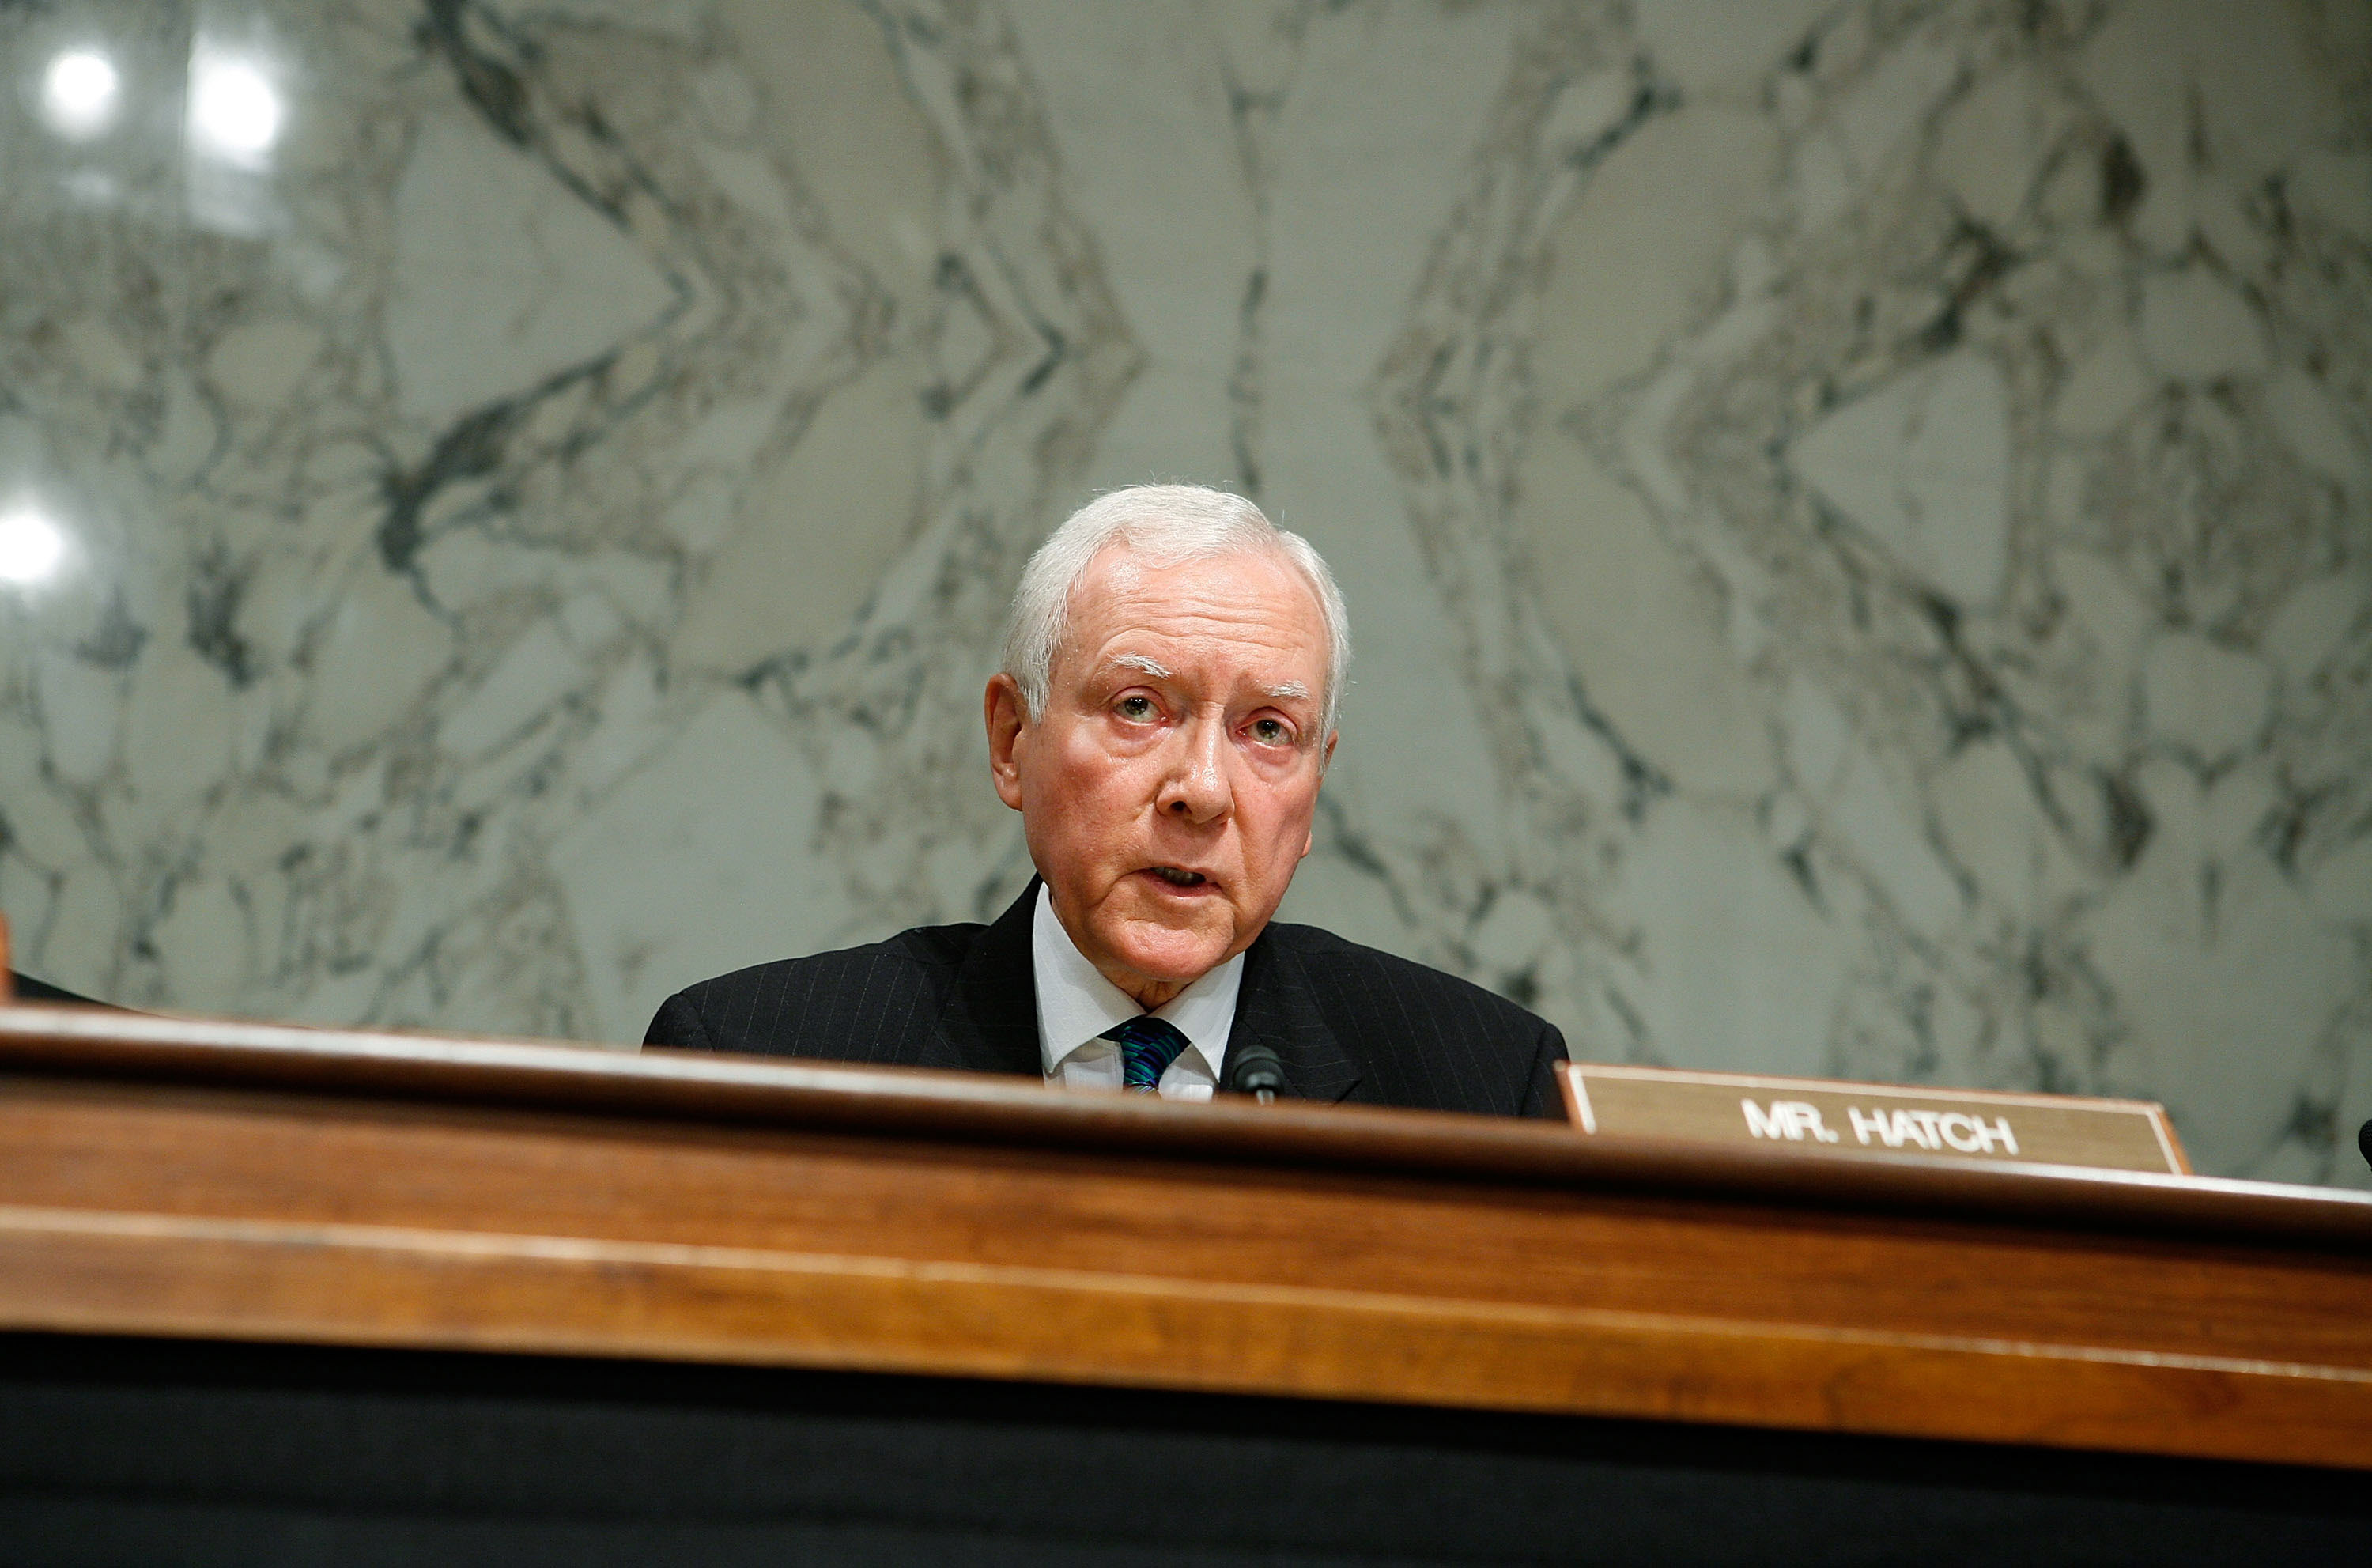 U.S. Sen. Orrin Hatch (R-UT) speaks during a mark up hearing before the Senate Finance Committee on Capitol Hill in Washington, DC., on Sept. 23, 2009.